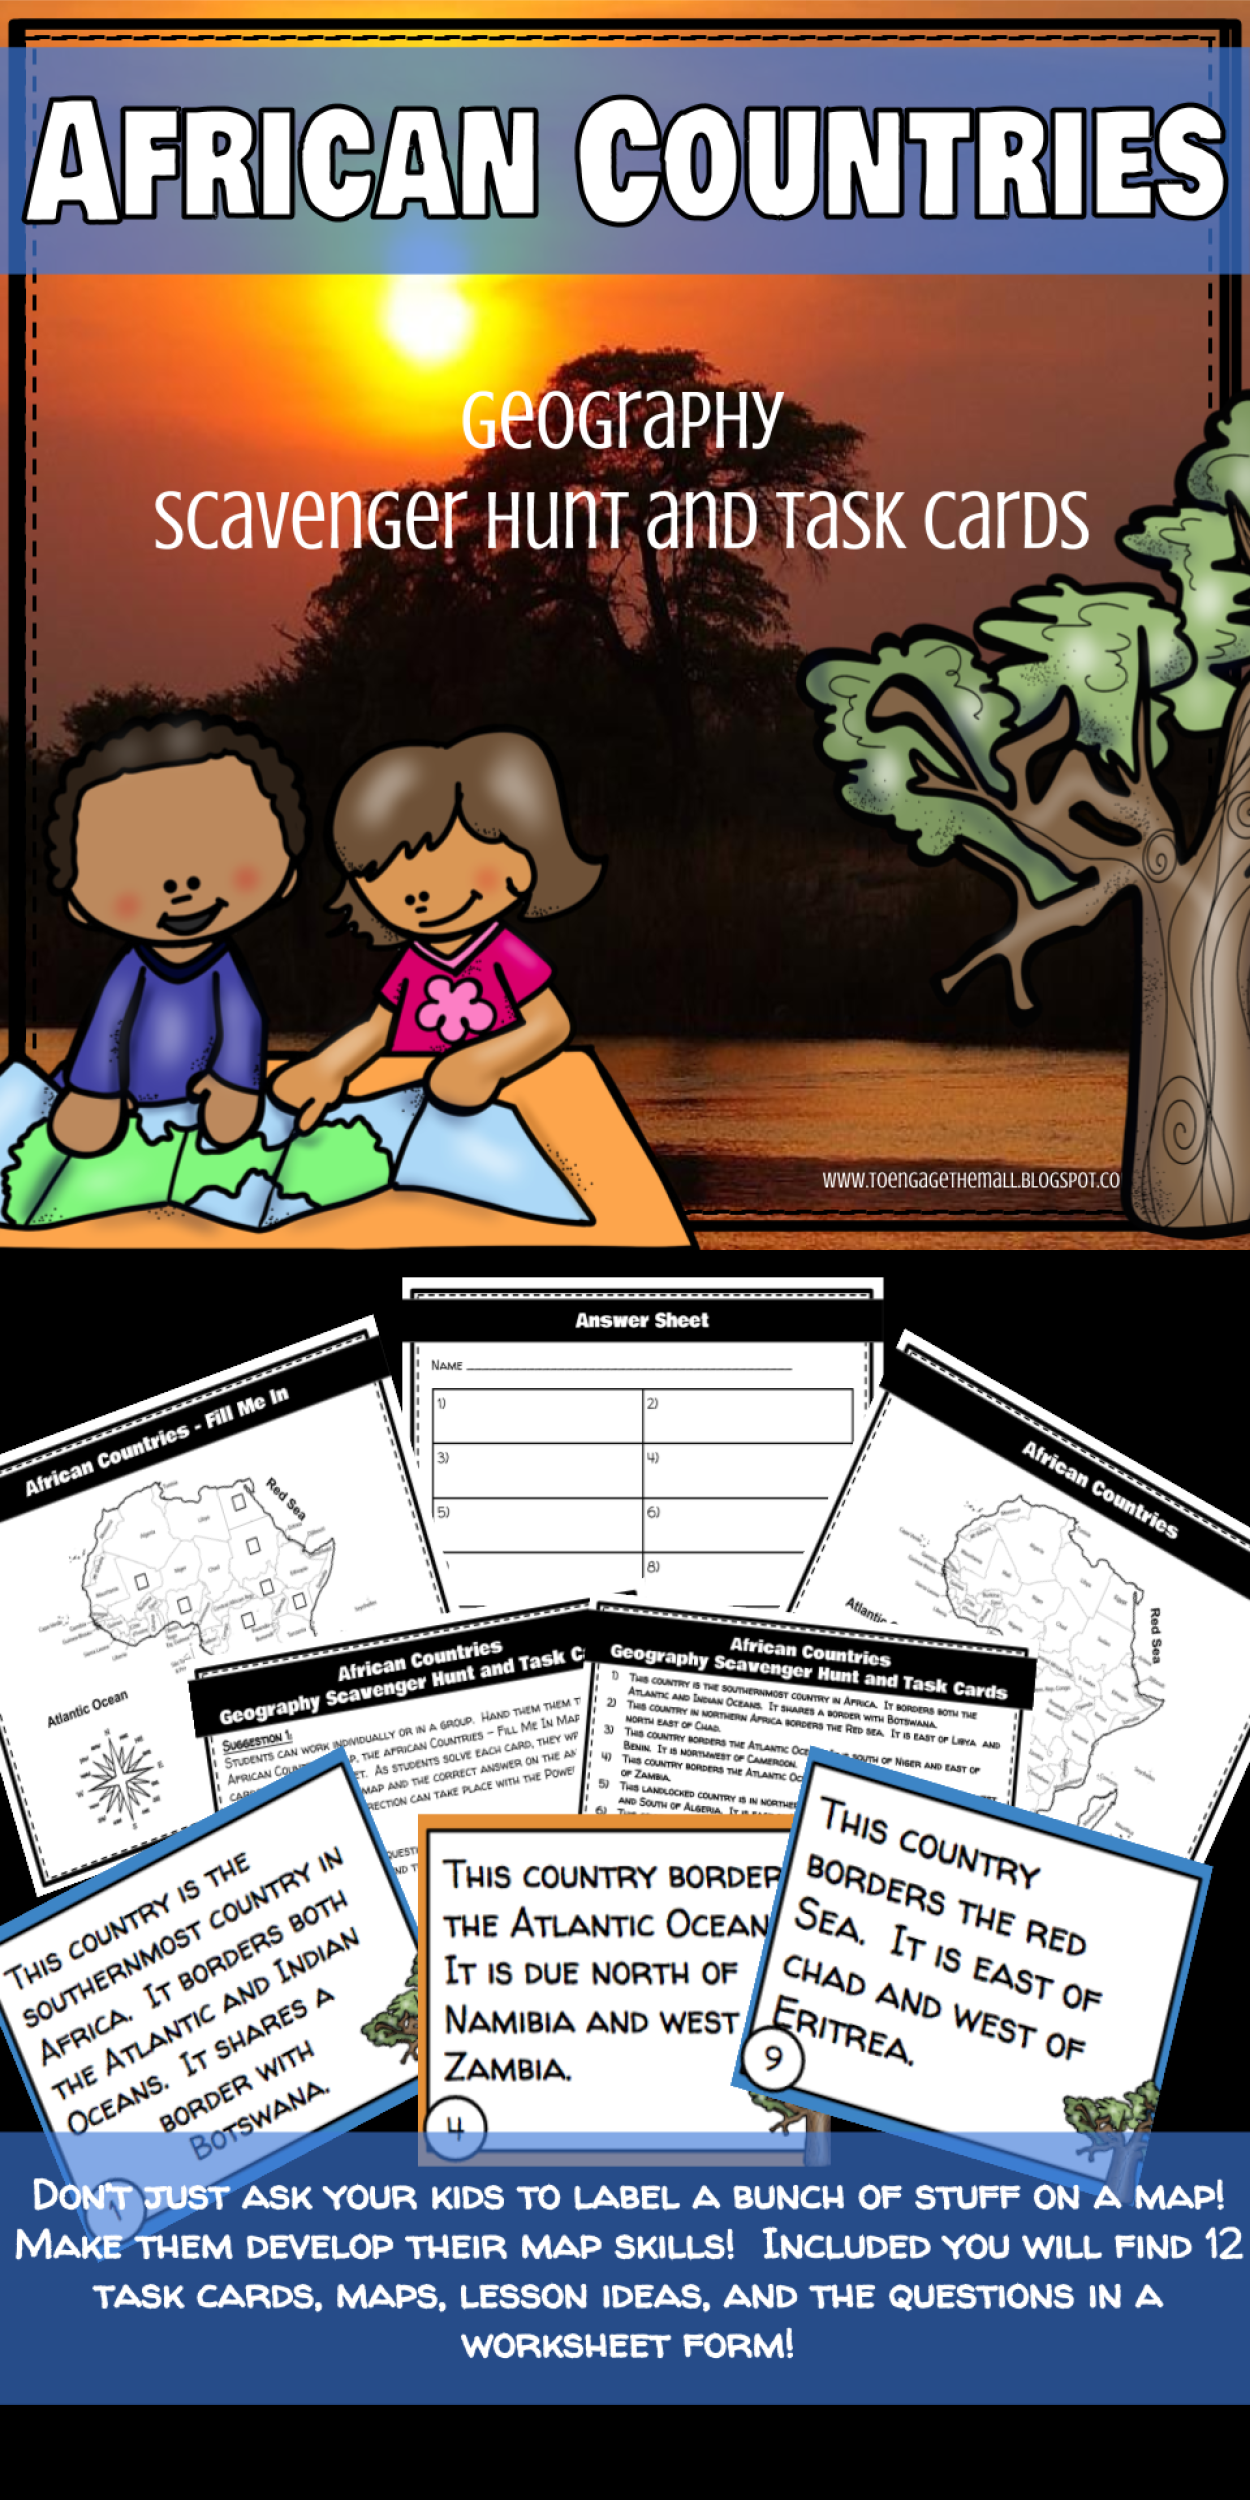 African Countries Geography Scavenger Hunt And Task Cards